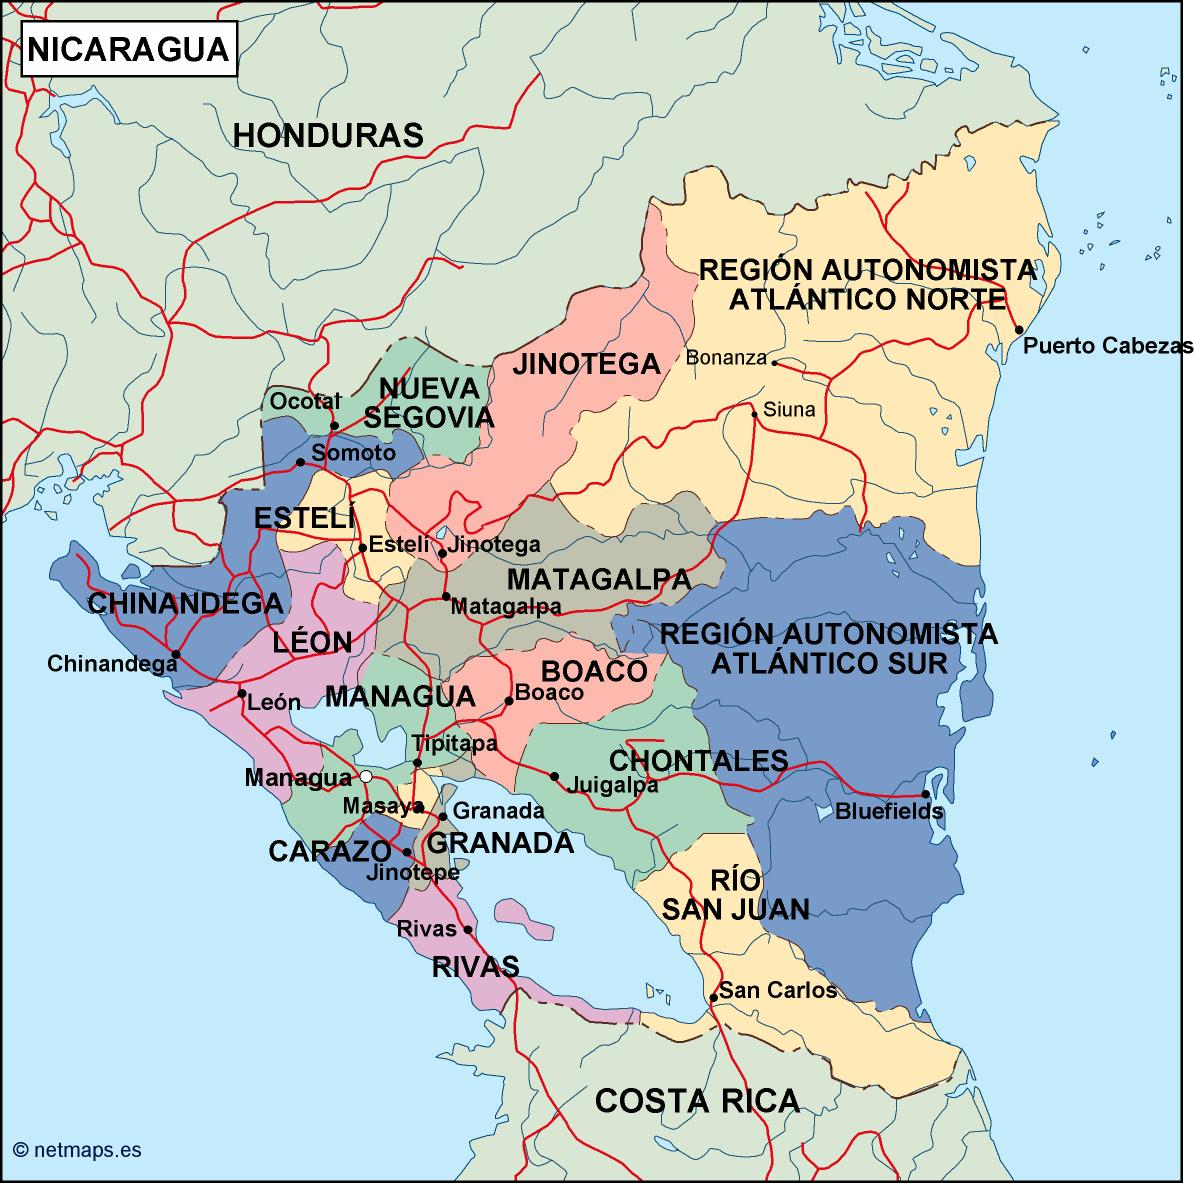 nicaragua political map | Order and download nicaragua political map